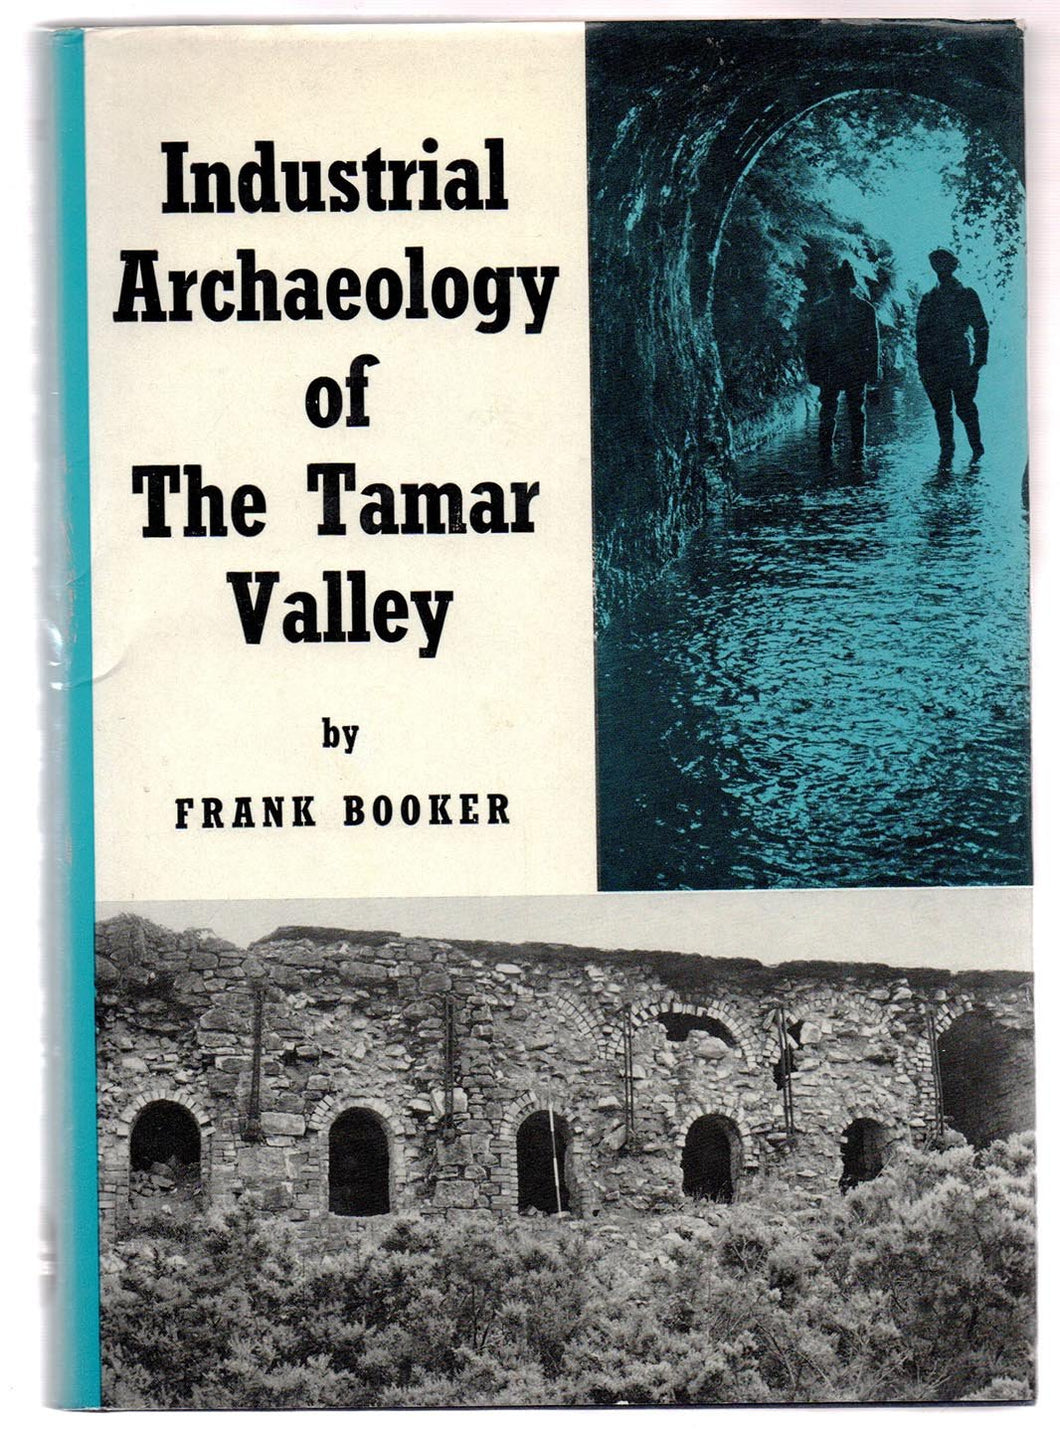 The Industrial Archaeology of The Tamar Valley